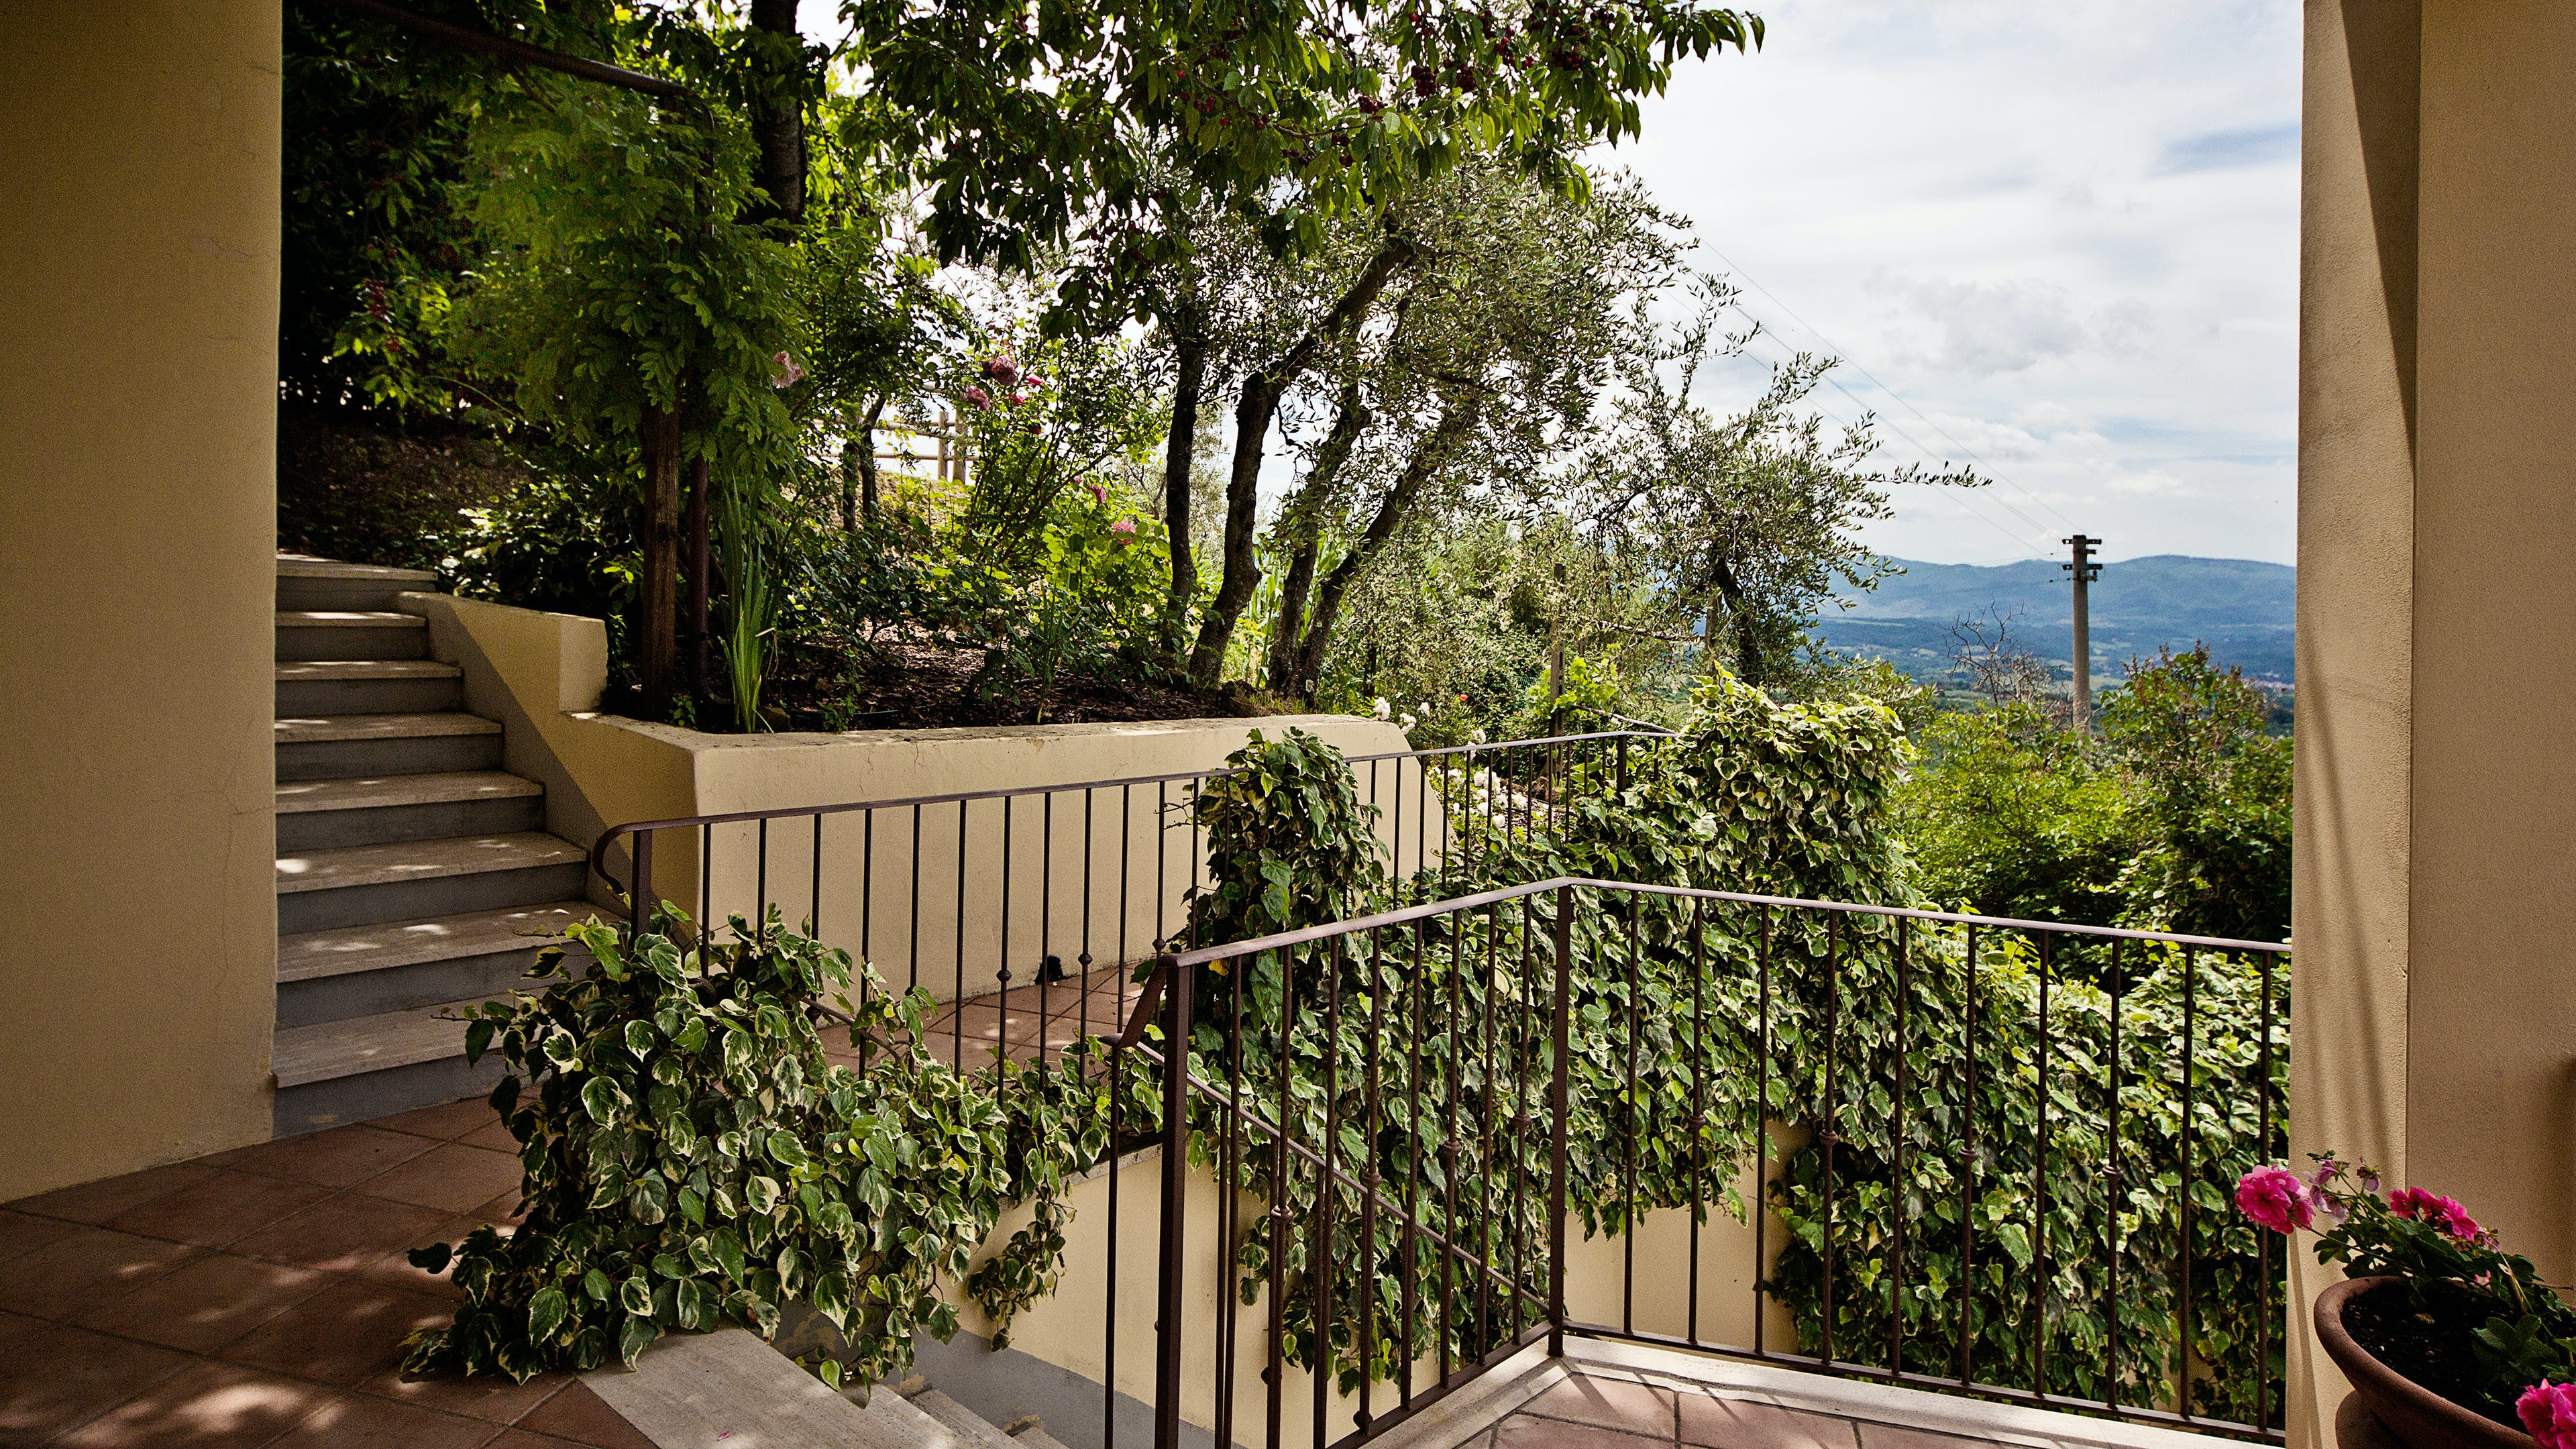 Le Terrazze and Il Villino, Pian Di Sco' Italy -  - New York City Townhouse Real Estate